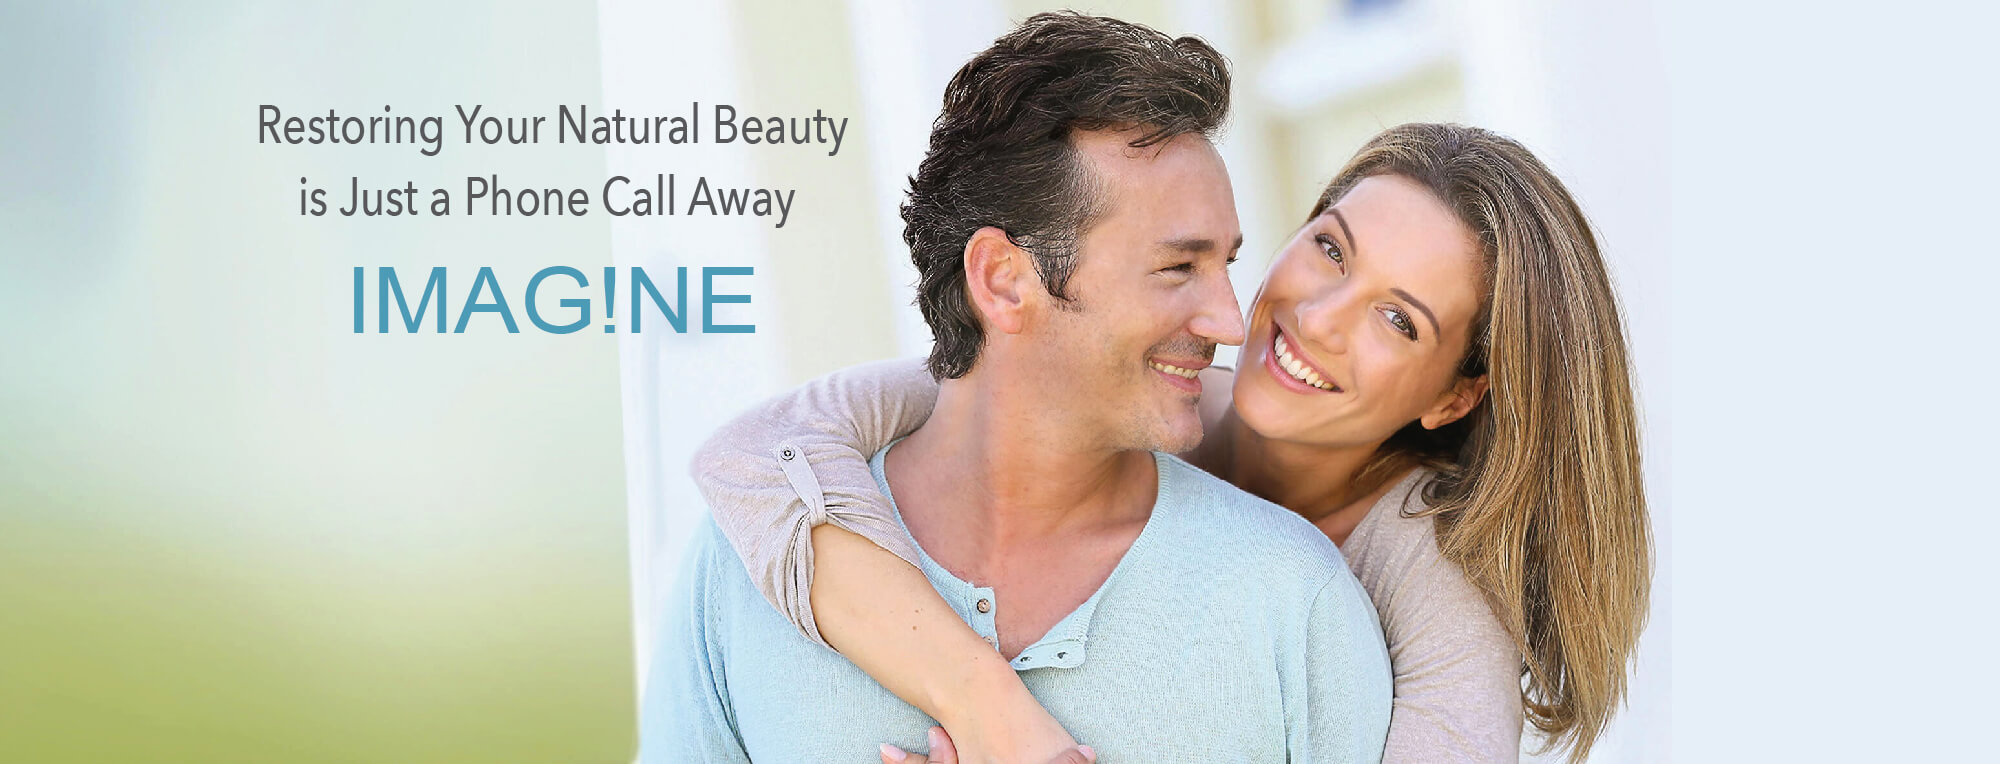 Dr Diepenbrock Facial Cosmetic Plastic Surgery in Warsaw Indiana Header Image